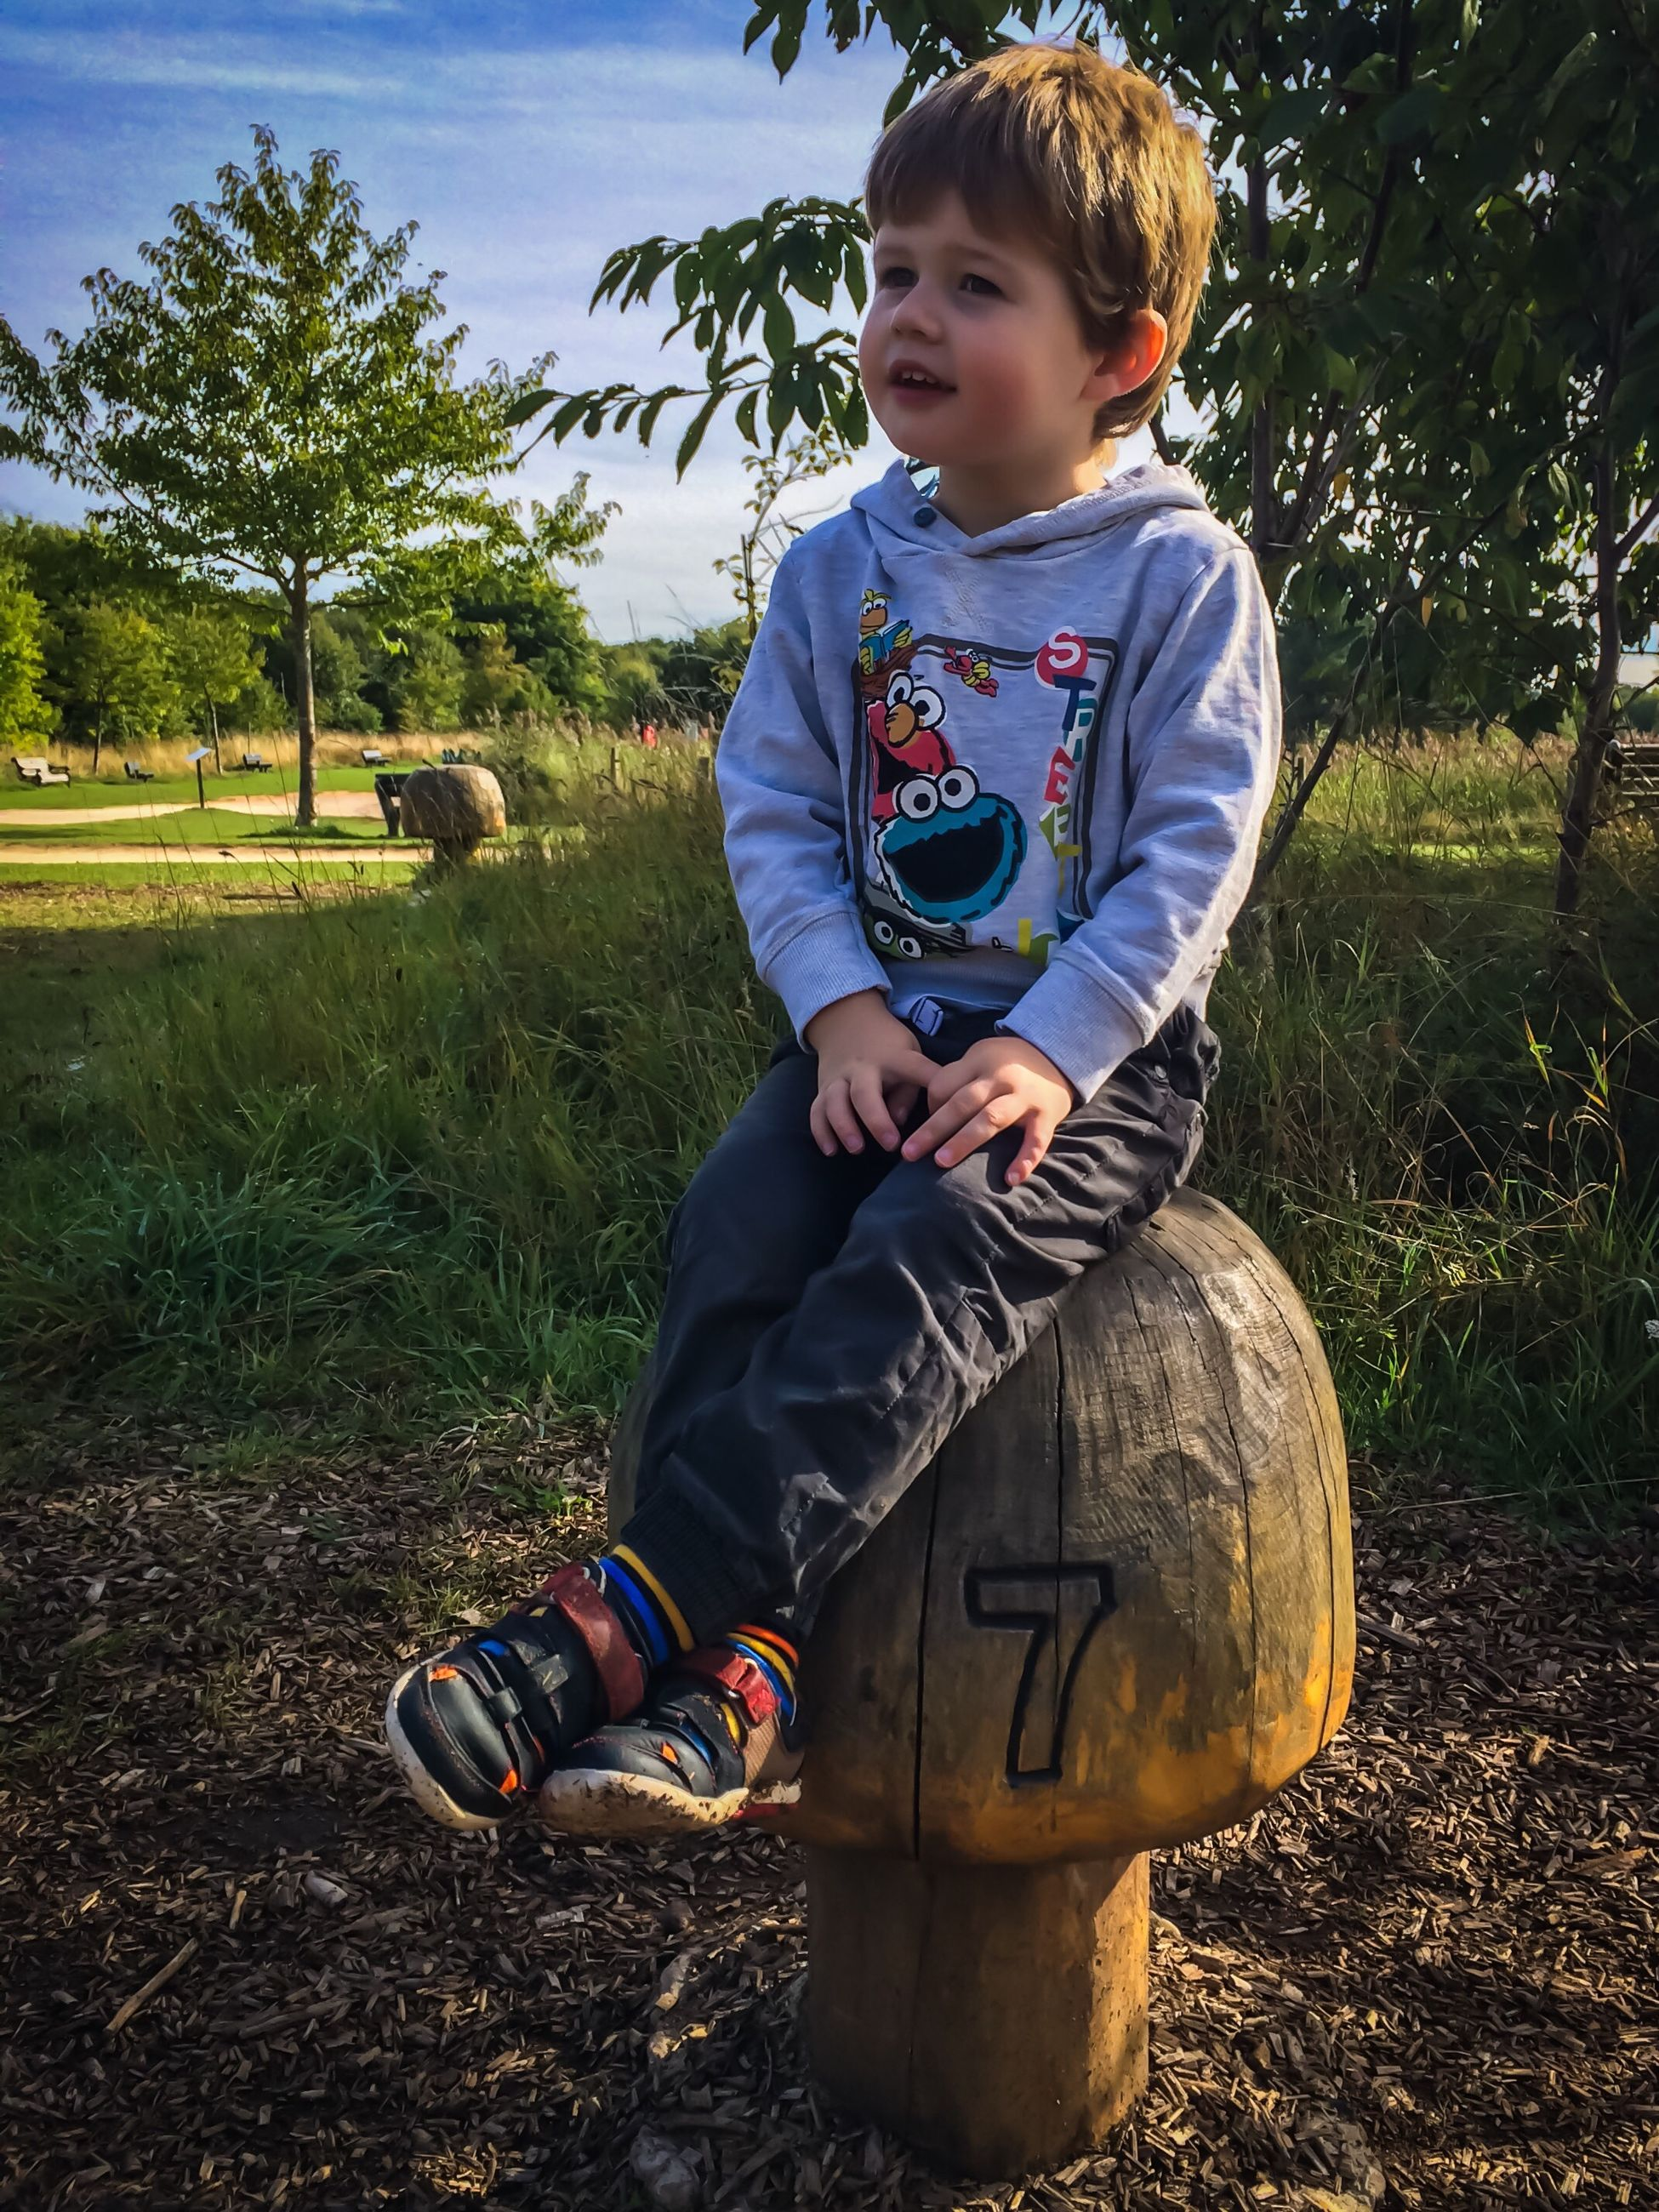 full length, childhood, casual clothing, leisure activity, person, elementary age, lifestyles, park - man made space, field, innocence, togetherness, day, outdoors, toddler, green color, footpath, focus on foreground